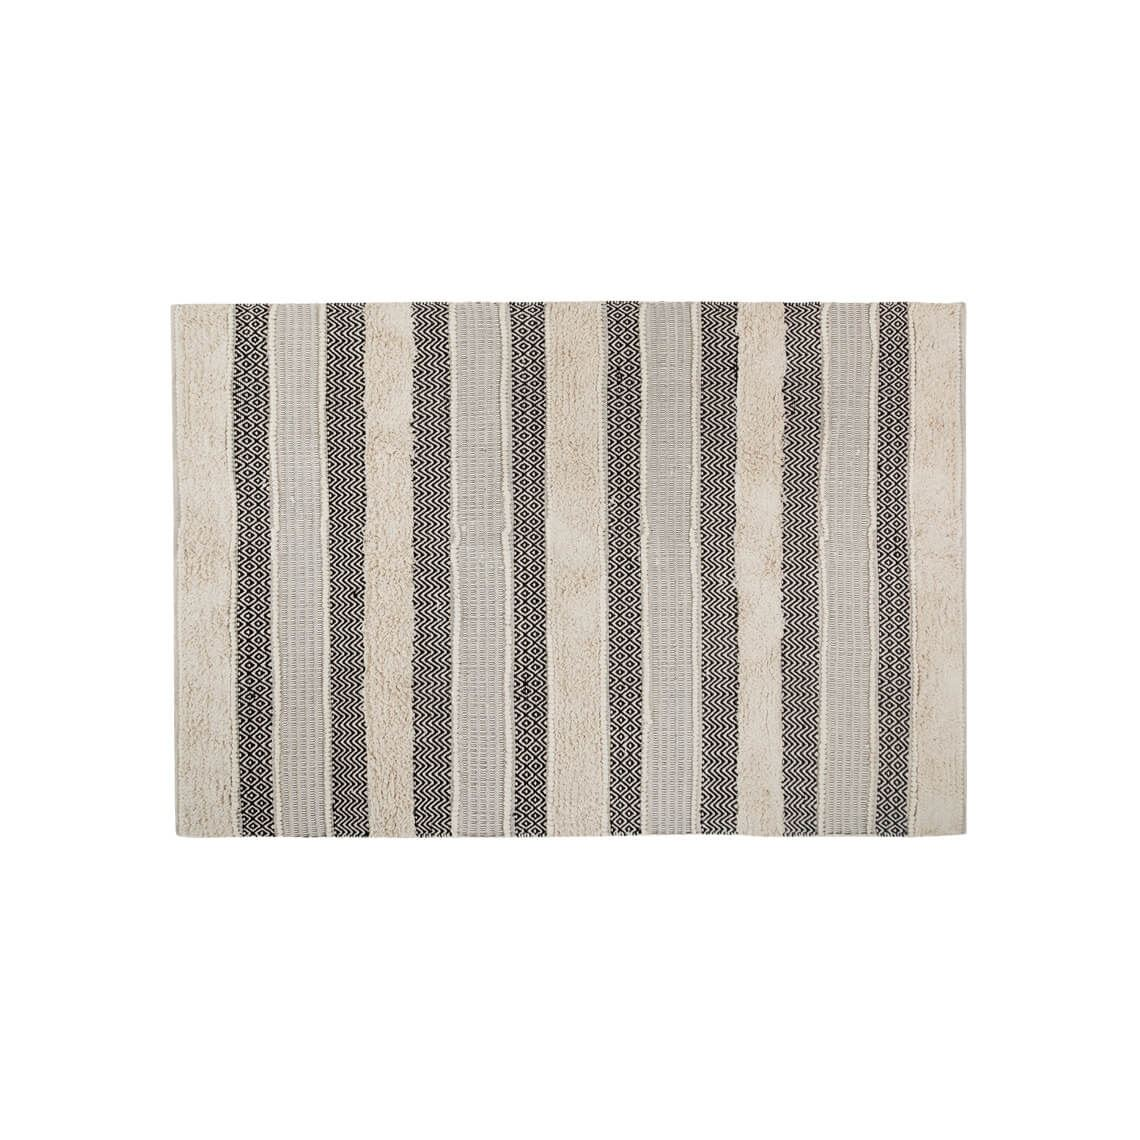 Ligaya Floor Rug Ivory & Black Size W 160cm x D 230cm x H 1cm in Ivory/Black 100% Cotton Freedom